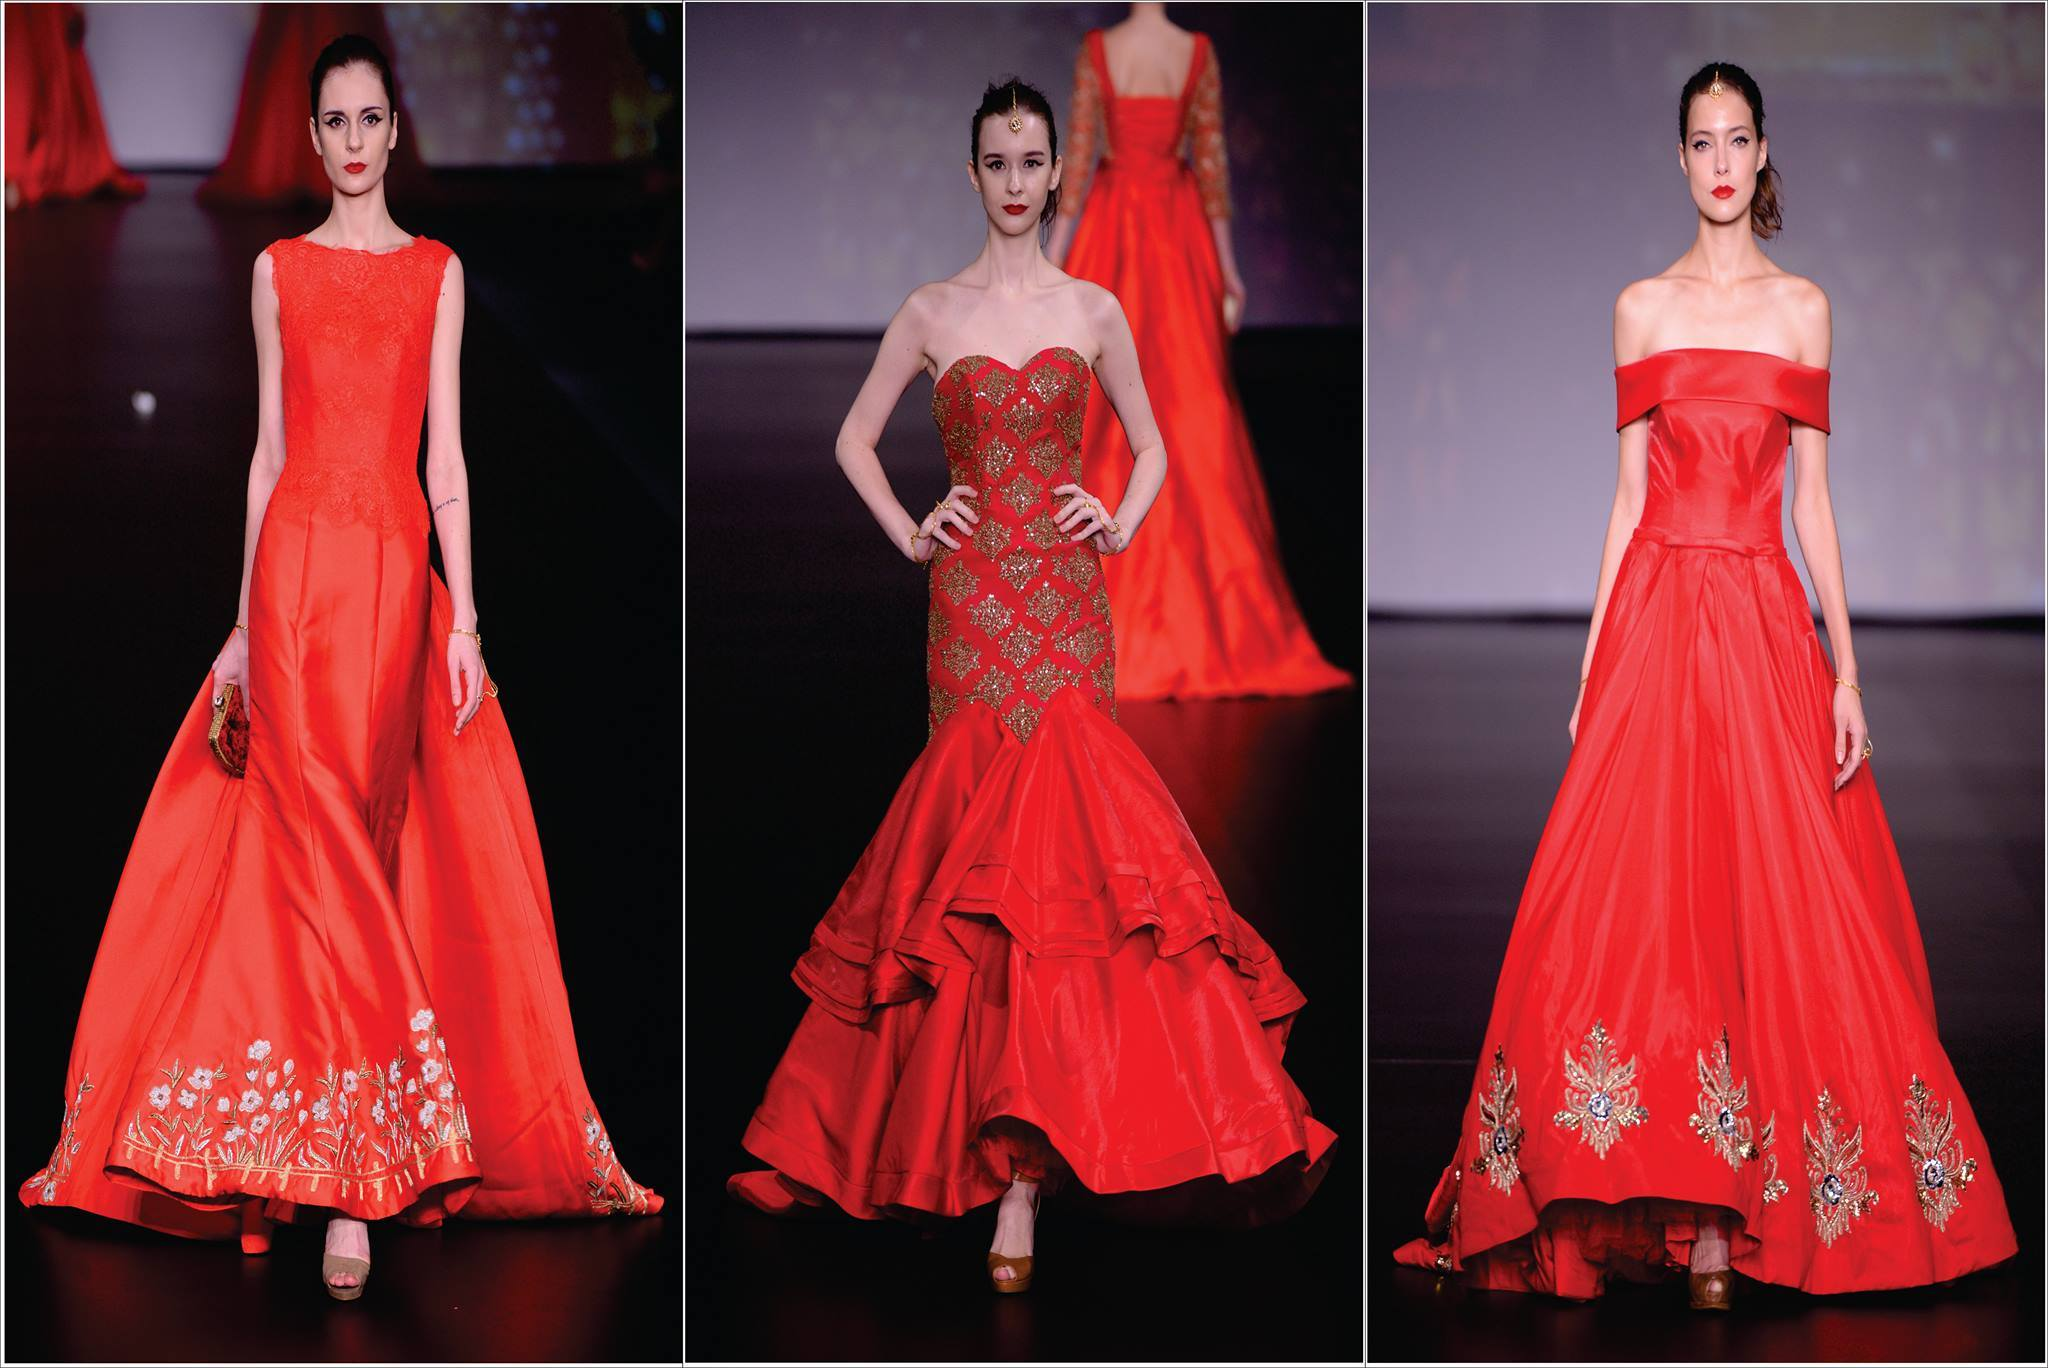 AVAKASA COLLECTION OF RED BRIDAL GOWNS